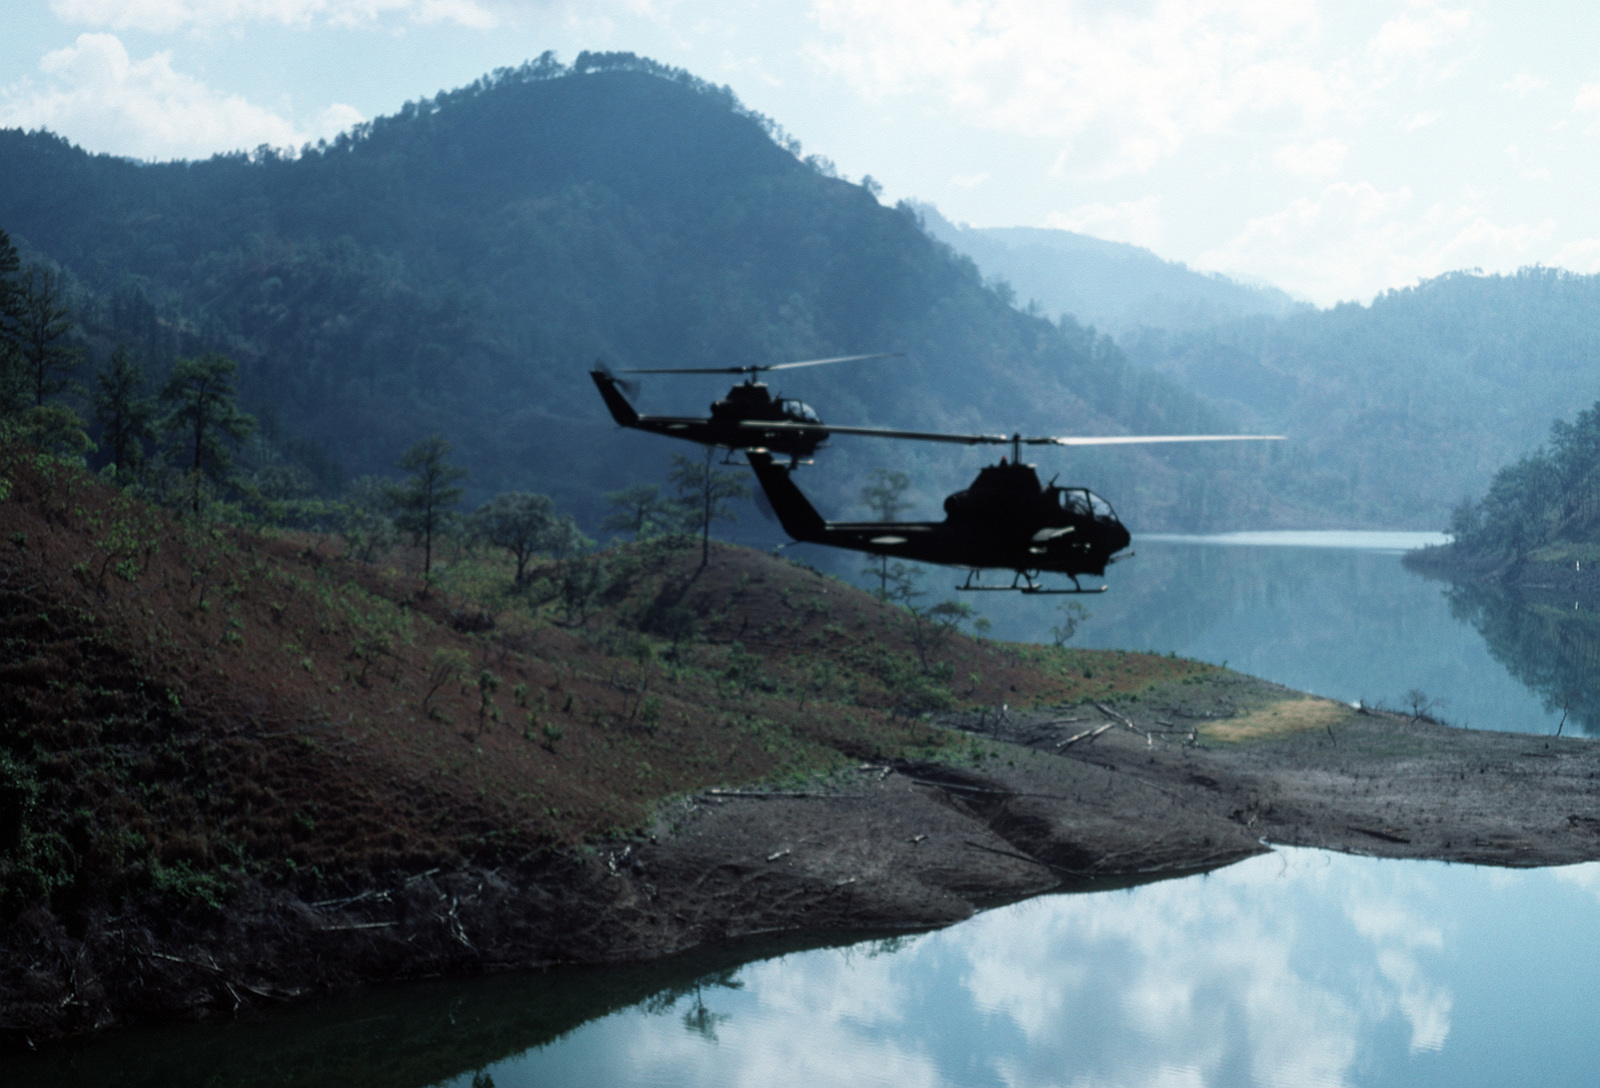 An air-to-air right side view of two AH-1 Cobra helicopters from the 17th Air Cavalry Brigade in flight for a combat run on the Camp Del Balomple Range.  President Ronald Reagan mobilized US Exercise Task Force DRAGON/GOLDEN PHEASANT, consisting of both the 82nd Airborne Division and the 7th Light Infantry Division, to help discourage Nicaraguan forces from entering Honduras